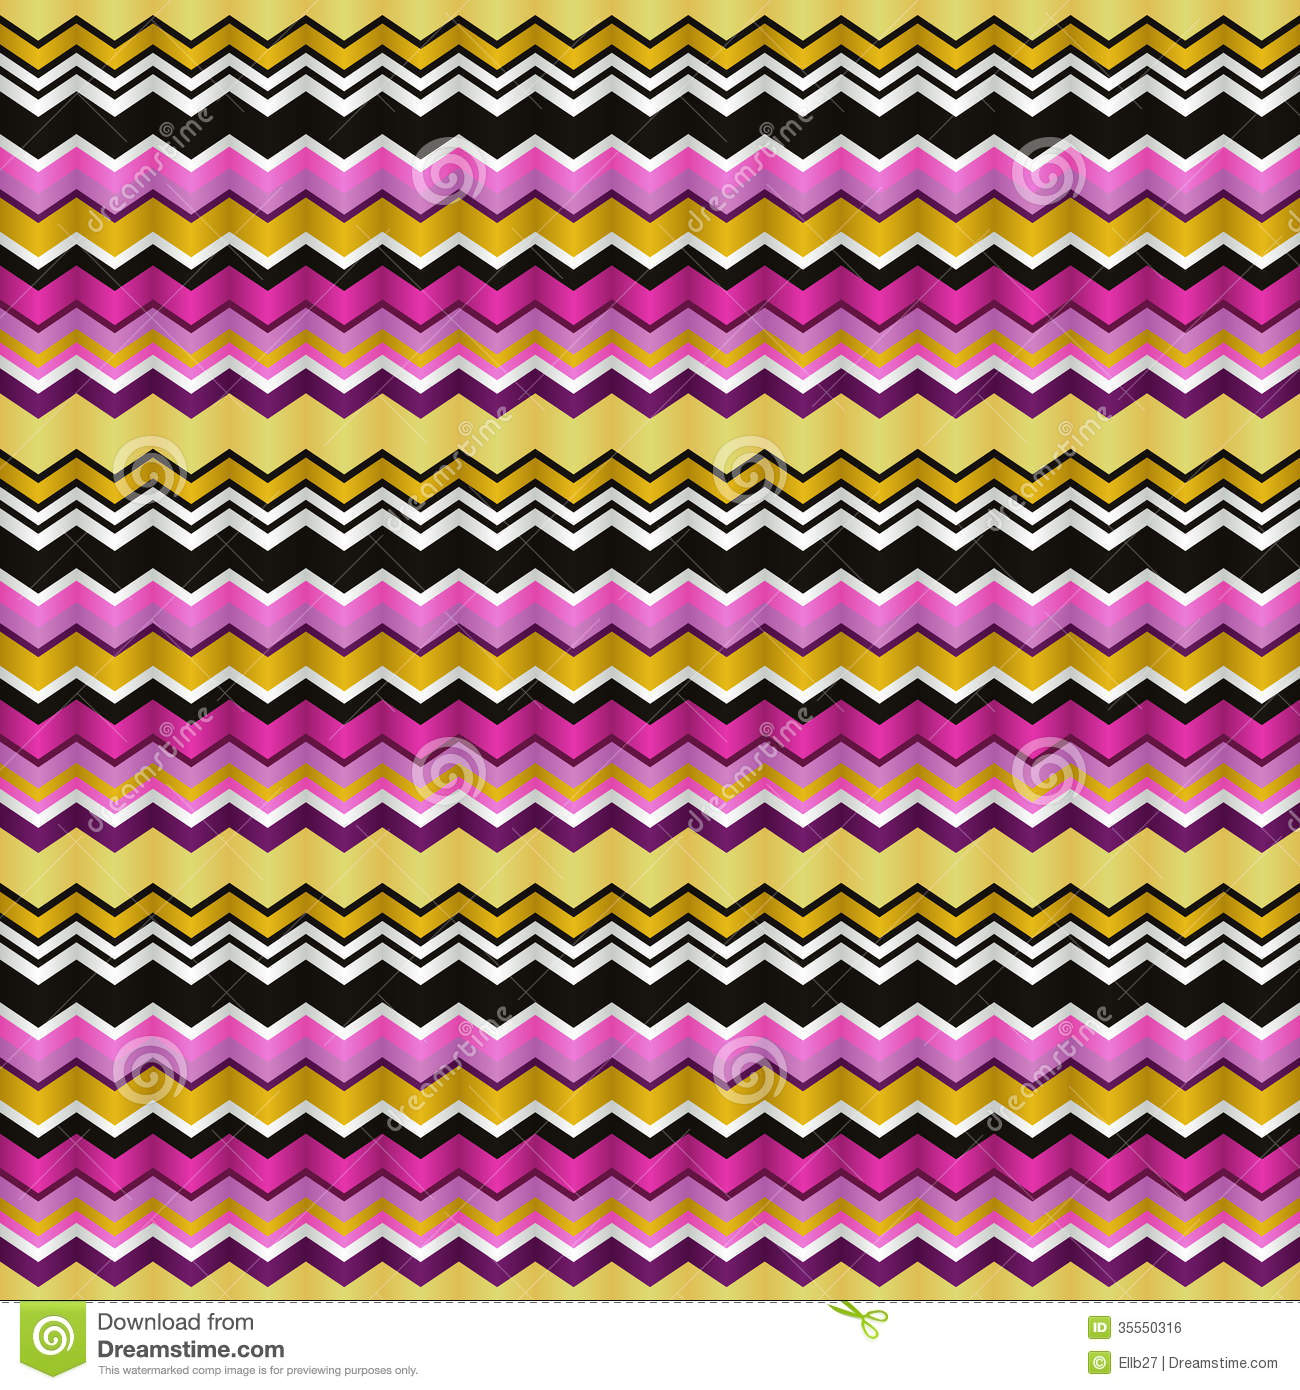 zig zag wallpaper bright color-#8